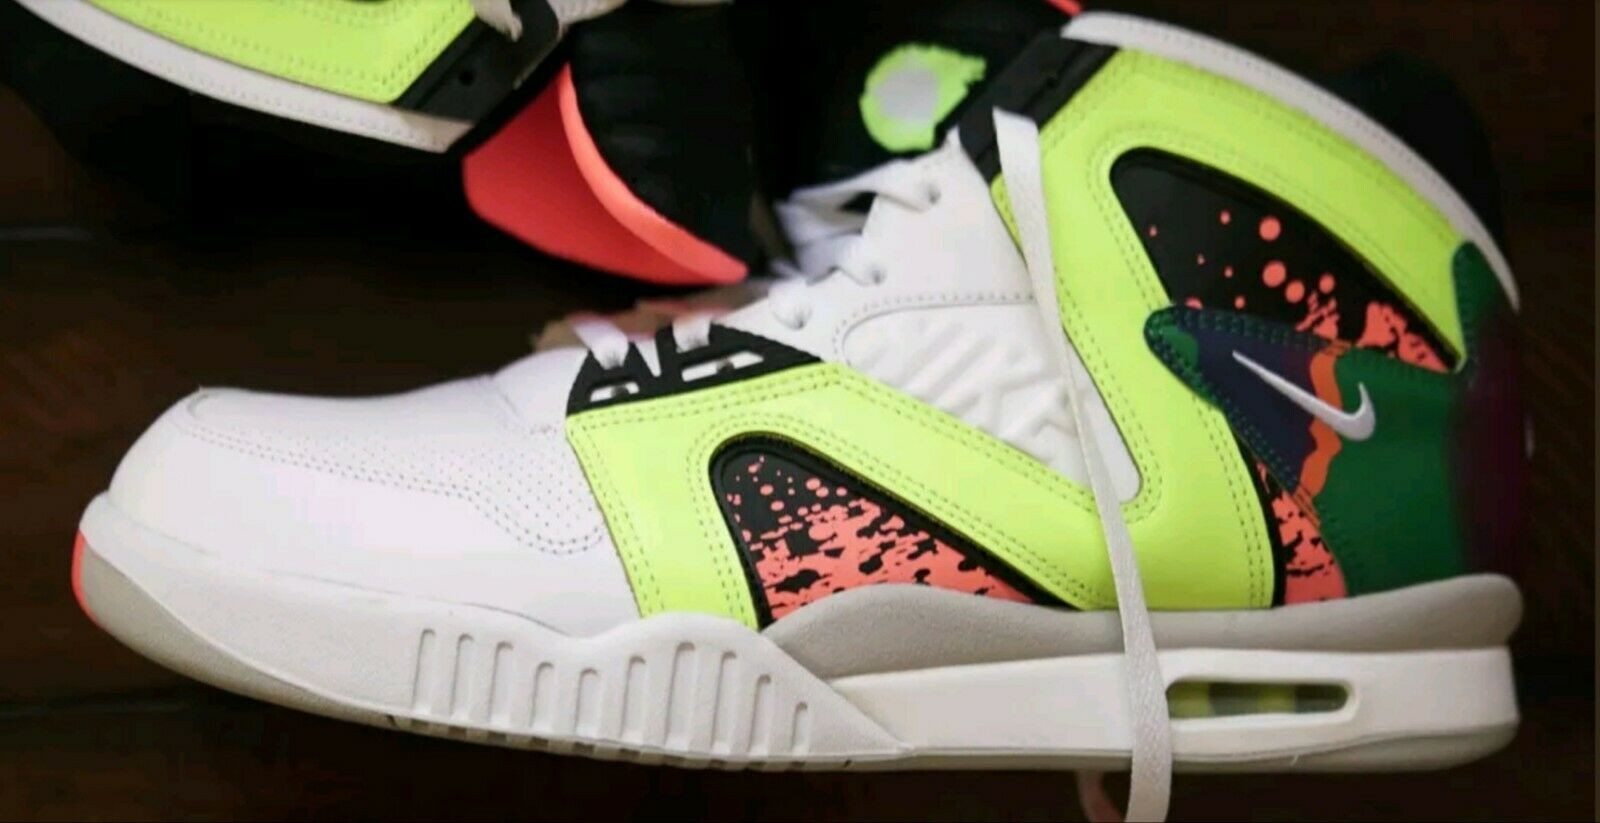 Nike Air Tech Challenge Hybrid Agassi 13 shoes